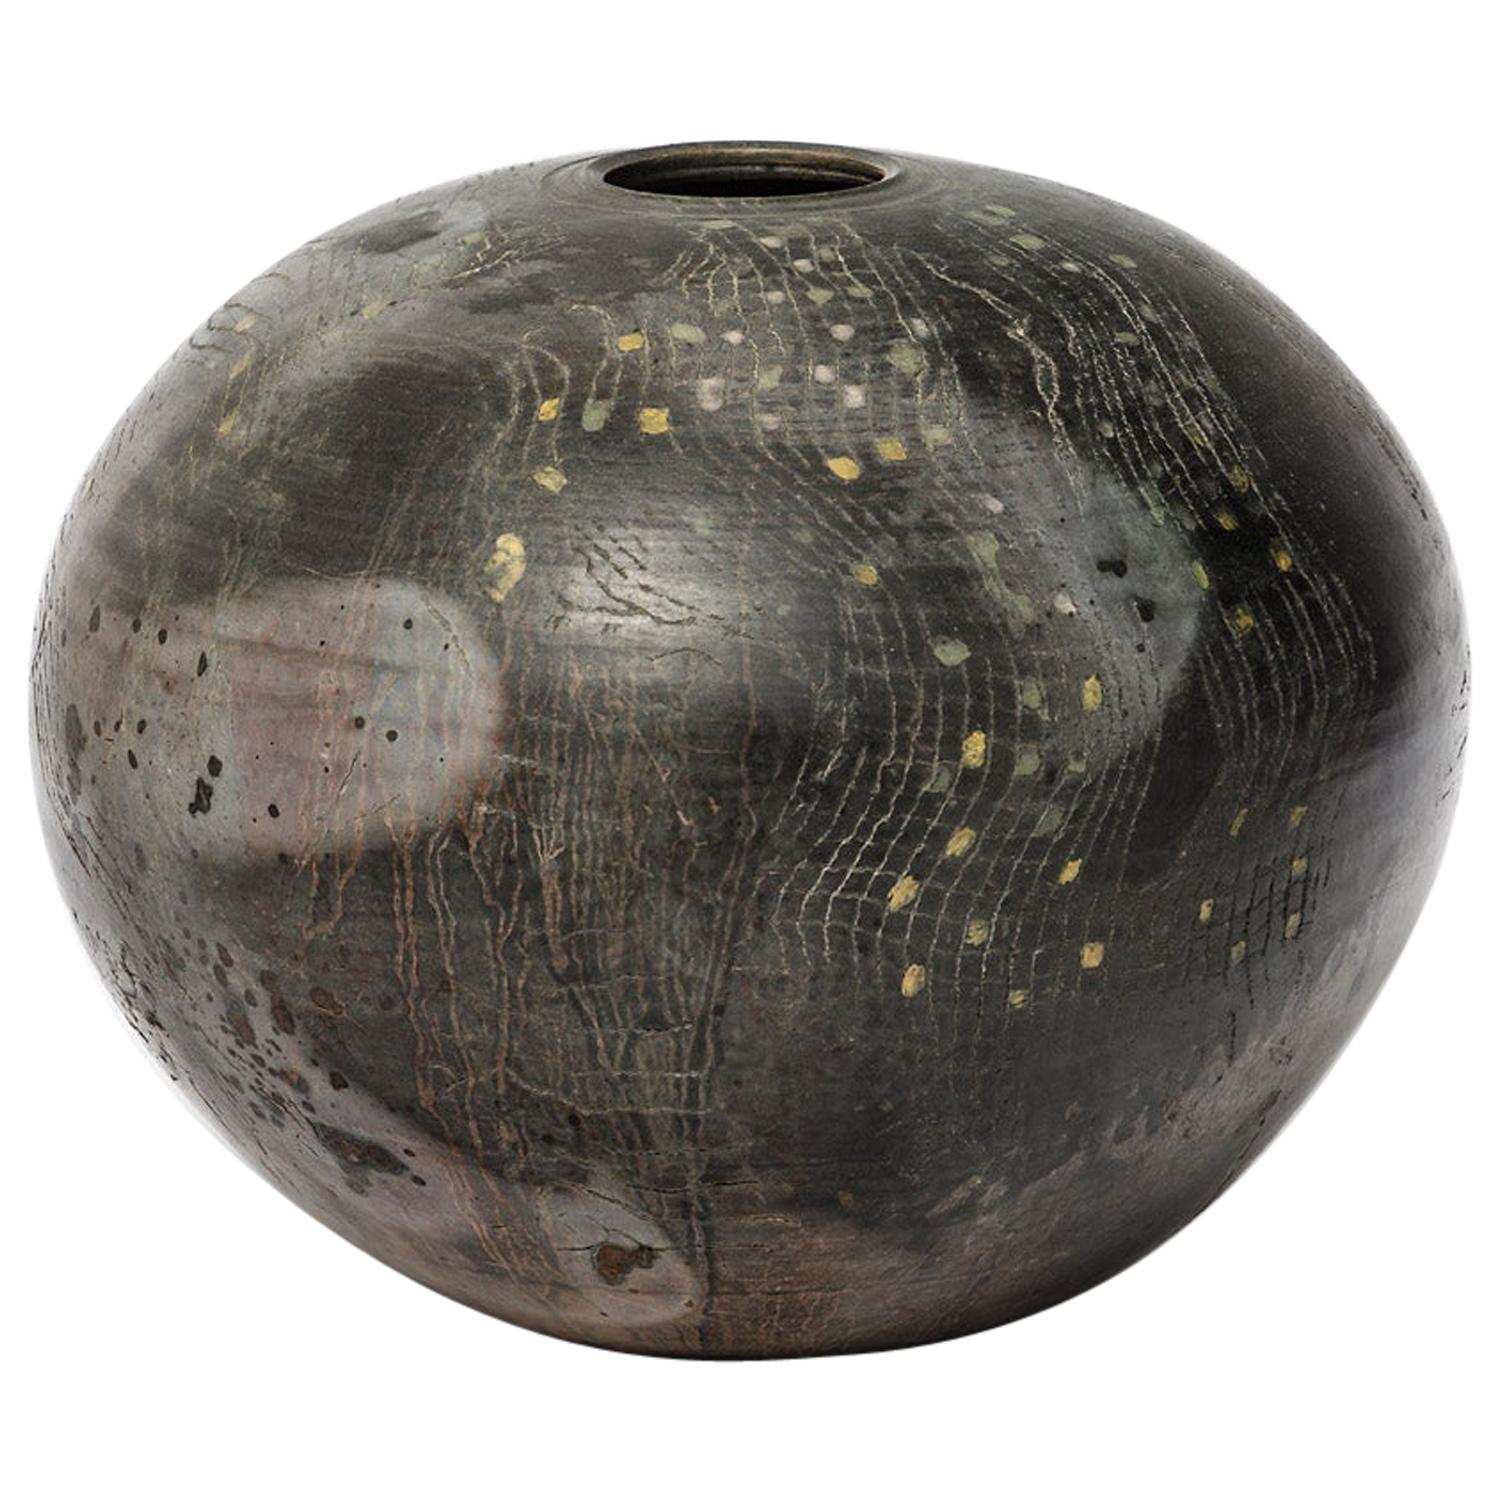 Ceramic Vase with Abstract Decoration, circa 1980-1990, by Loup Combres